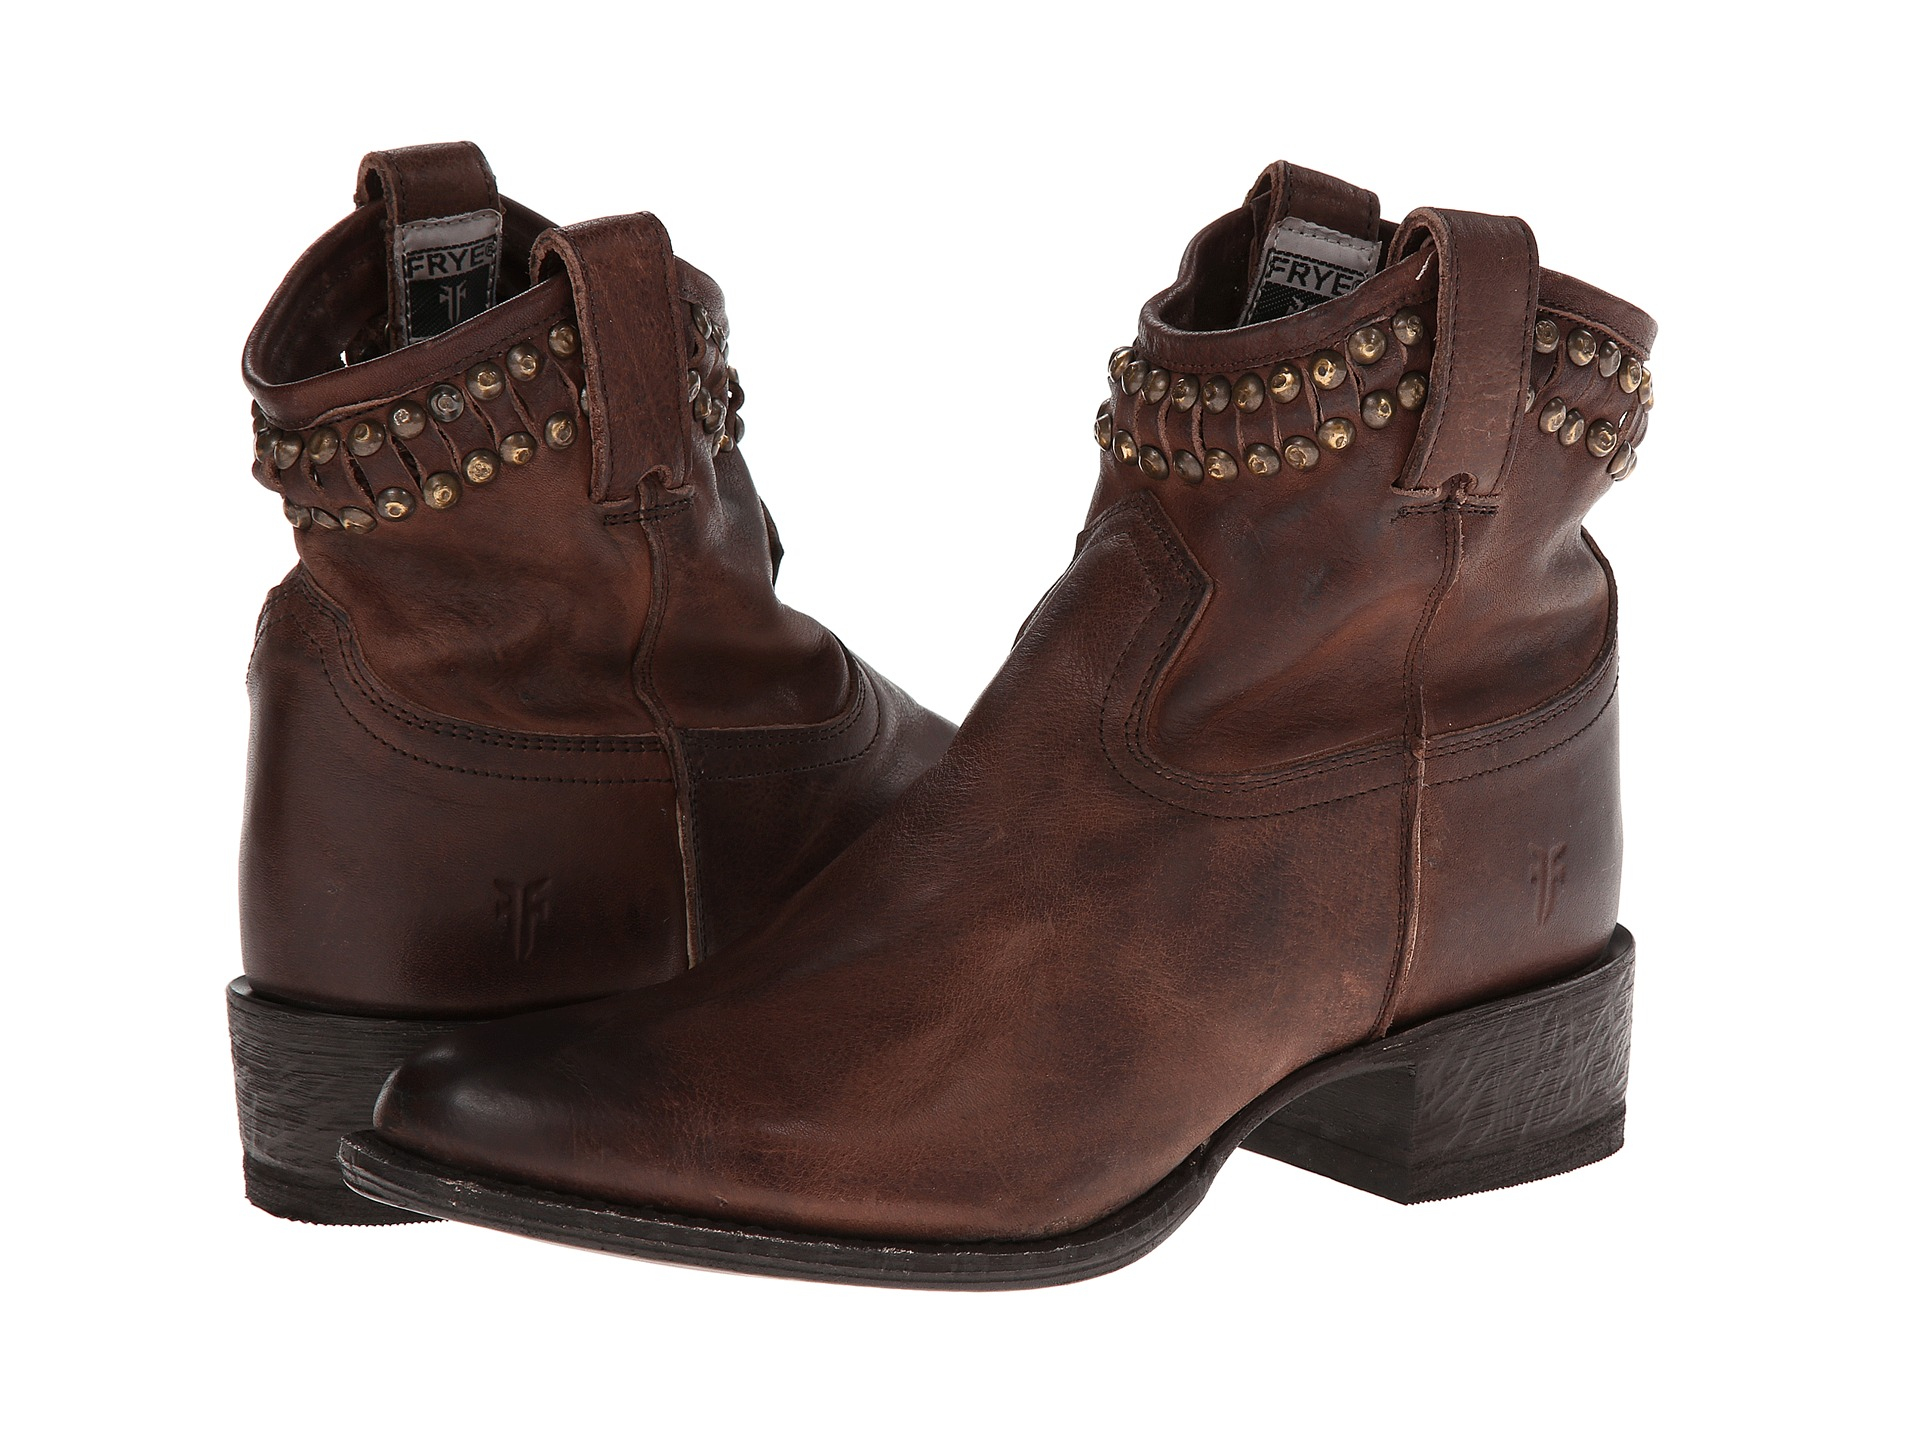 Zappos Boots For Men Images Rings 17